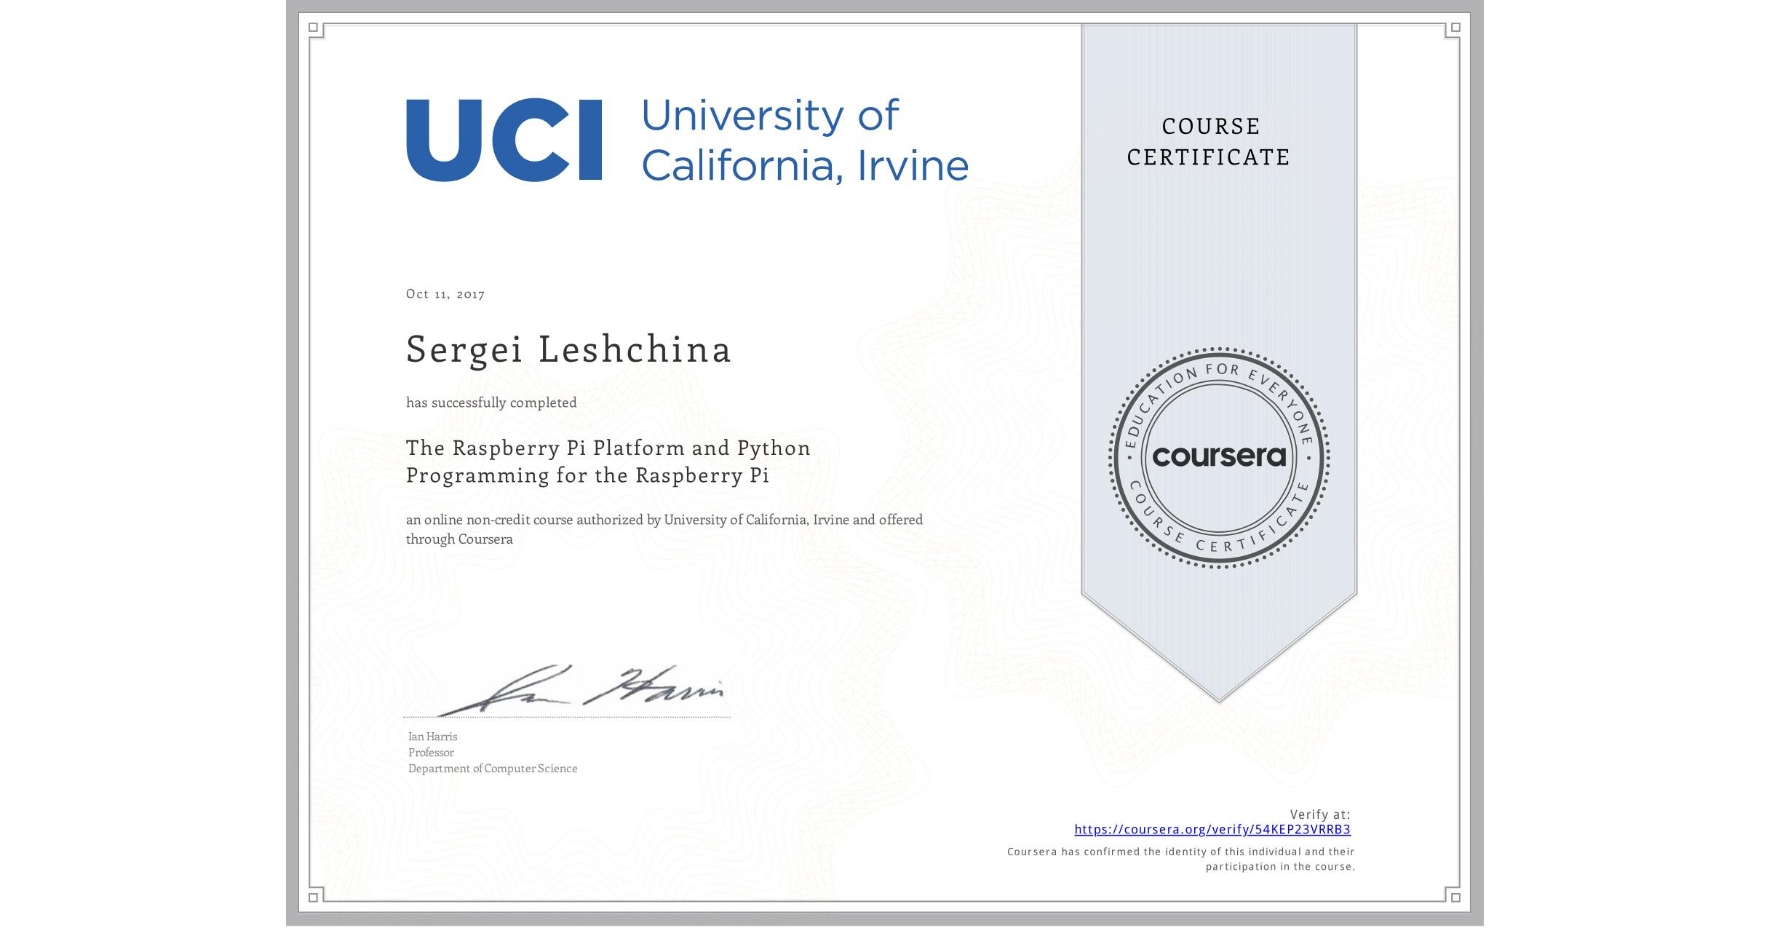 View certificate for Сергей Геннадьевич Лещина, The Raspberry Pi Platform and Python Programming for the Raspberry Pi, an online non-credit course authorized by University of California, Irvine and offered through Coursera